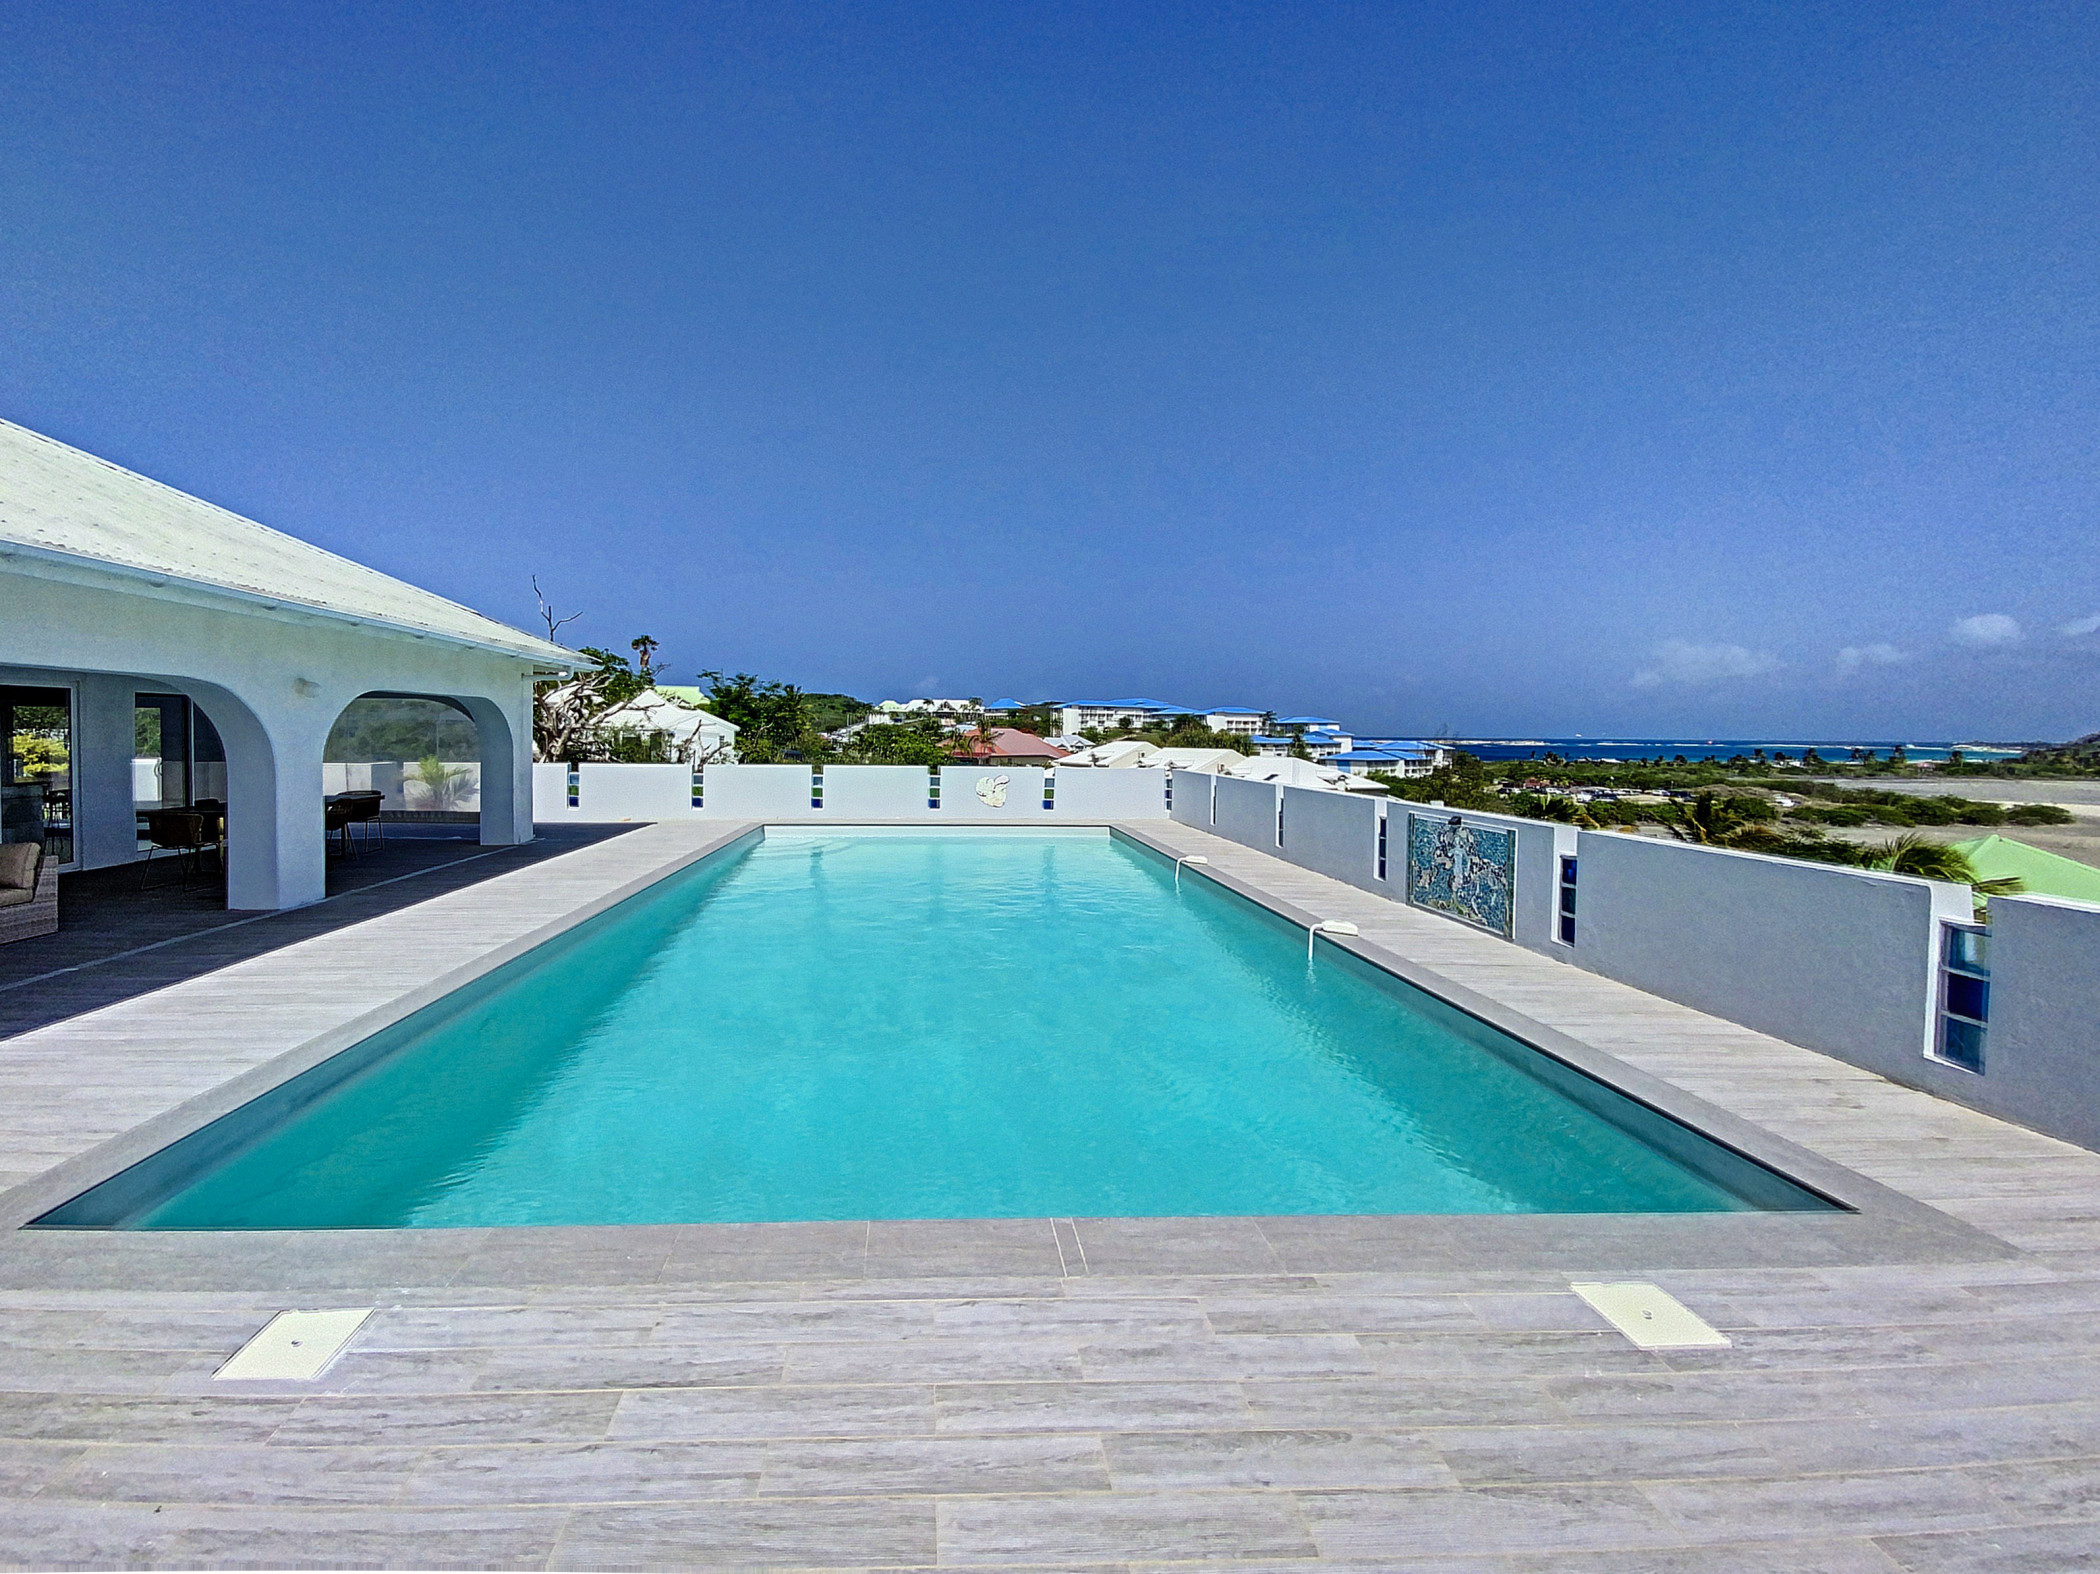 Villa Atypik, Orient bay walkable with super sized private pool